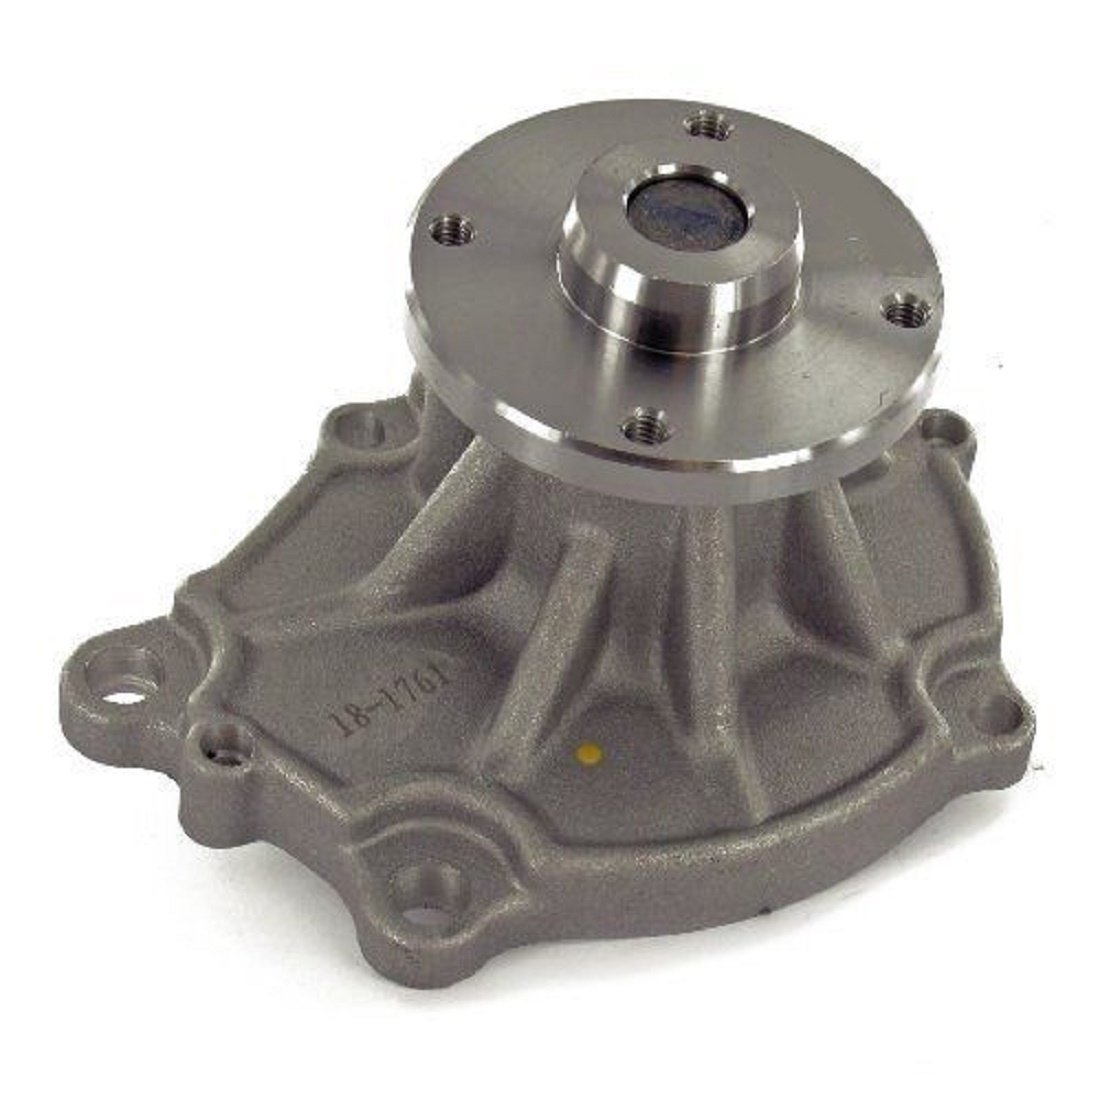 Nissan 21010-FU425 Forklift Water Pump, For K21-K25 Engine